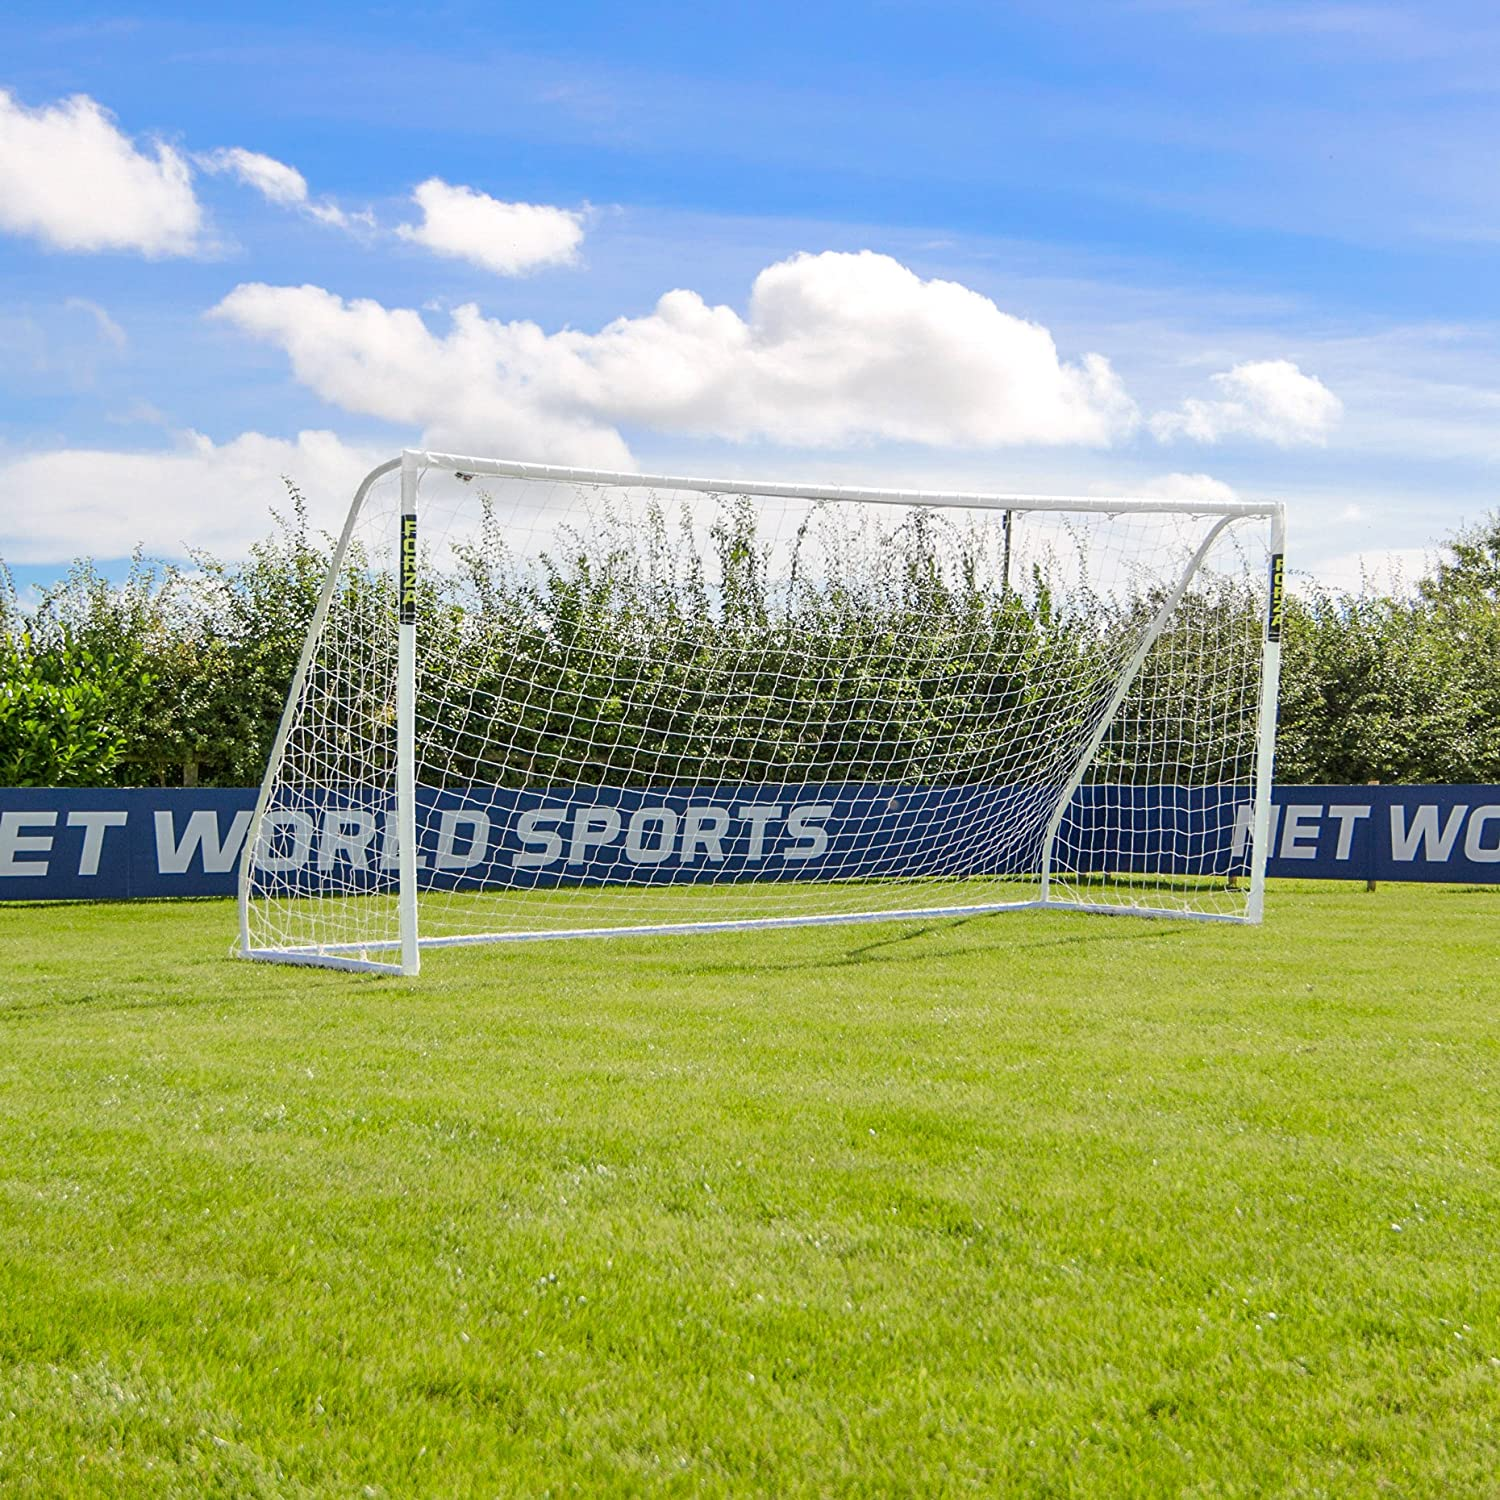 16 ft x 7 ft Forza Soccer Goal & Net – 最大のポータブルサッカーゴール使用可能。[ Net世界スポーツ] B076D9HH93 Goal Only